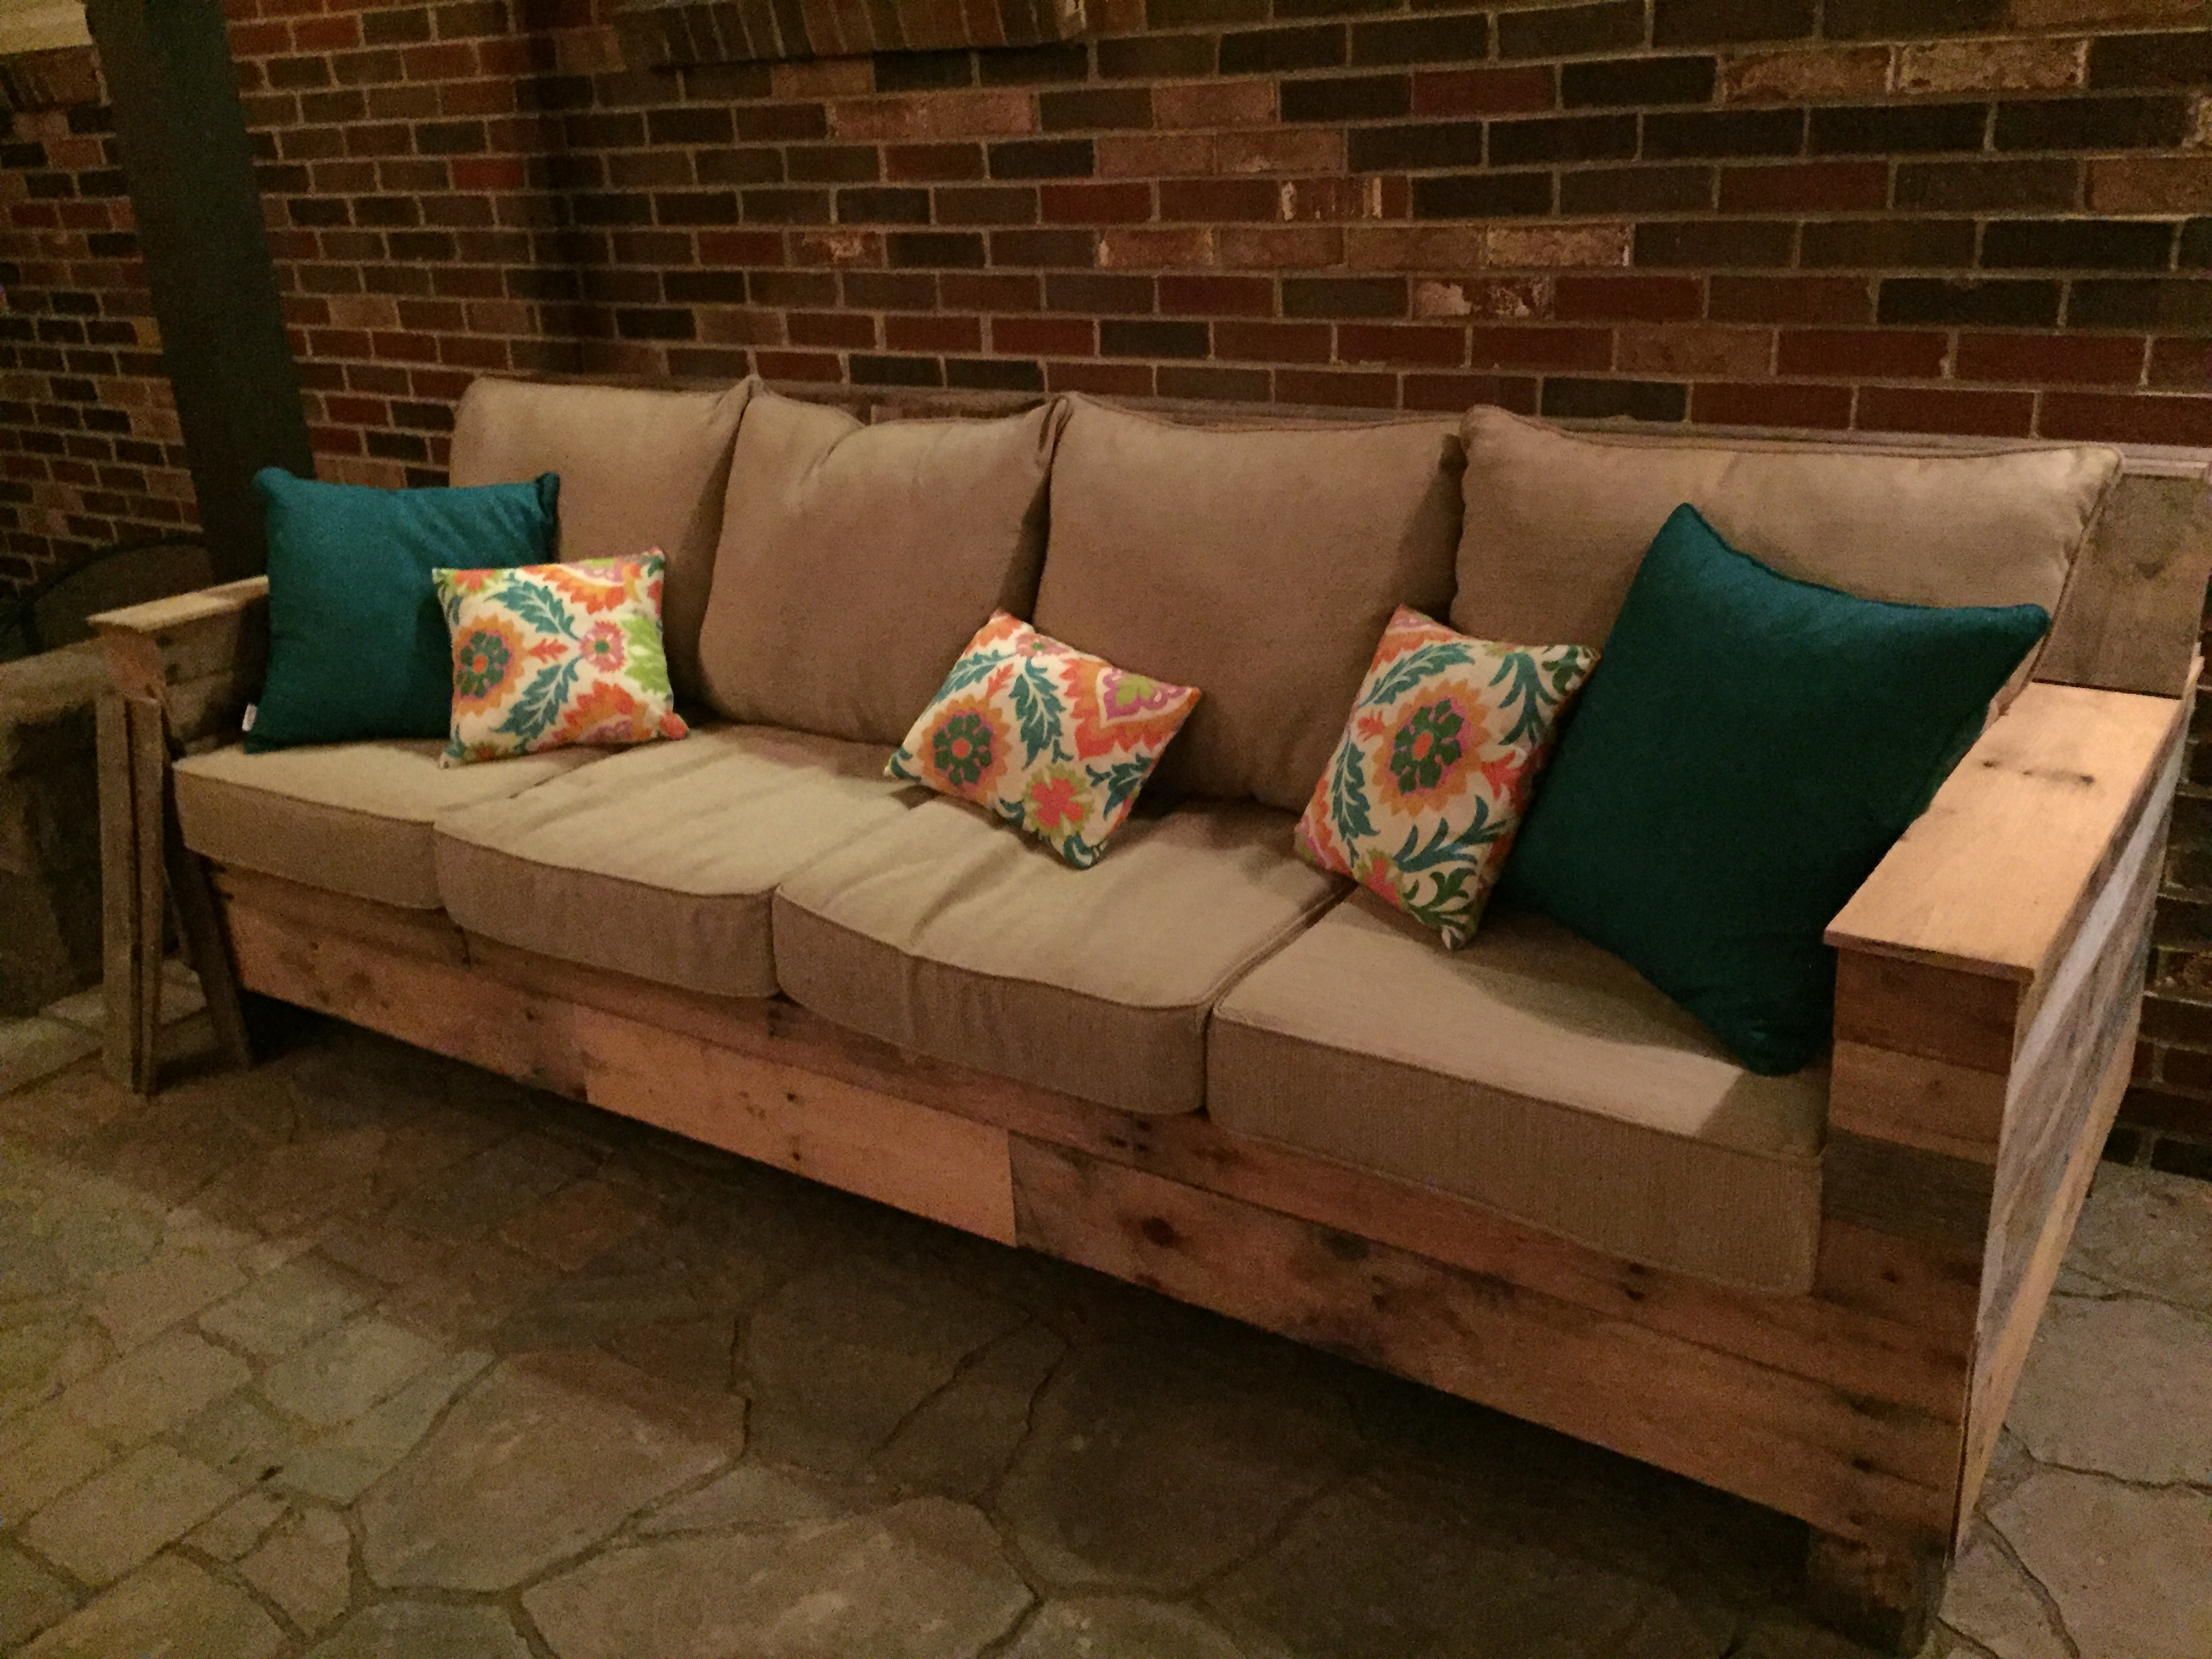 New Pallet Ideas for Outdoors